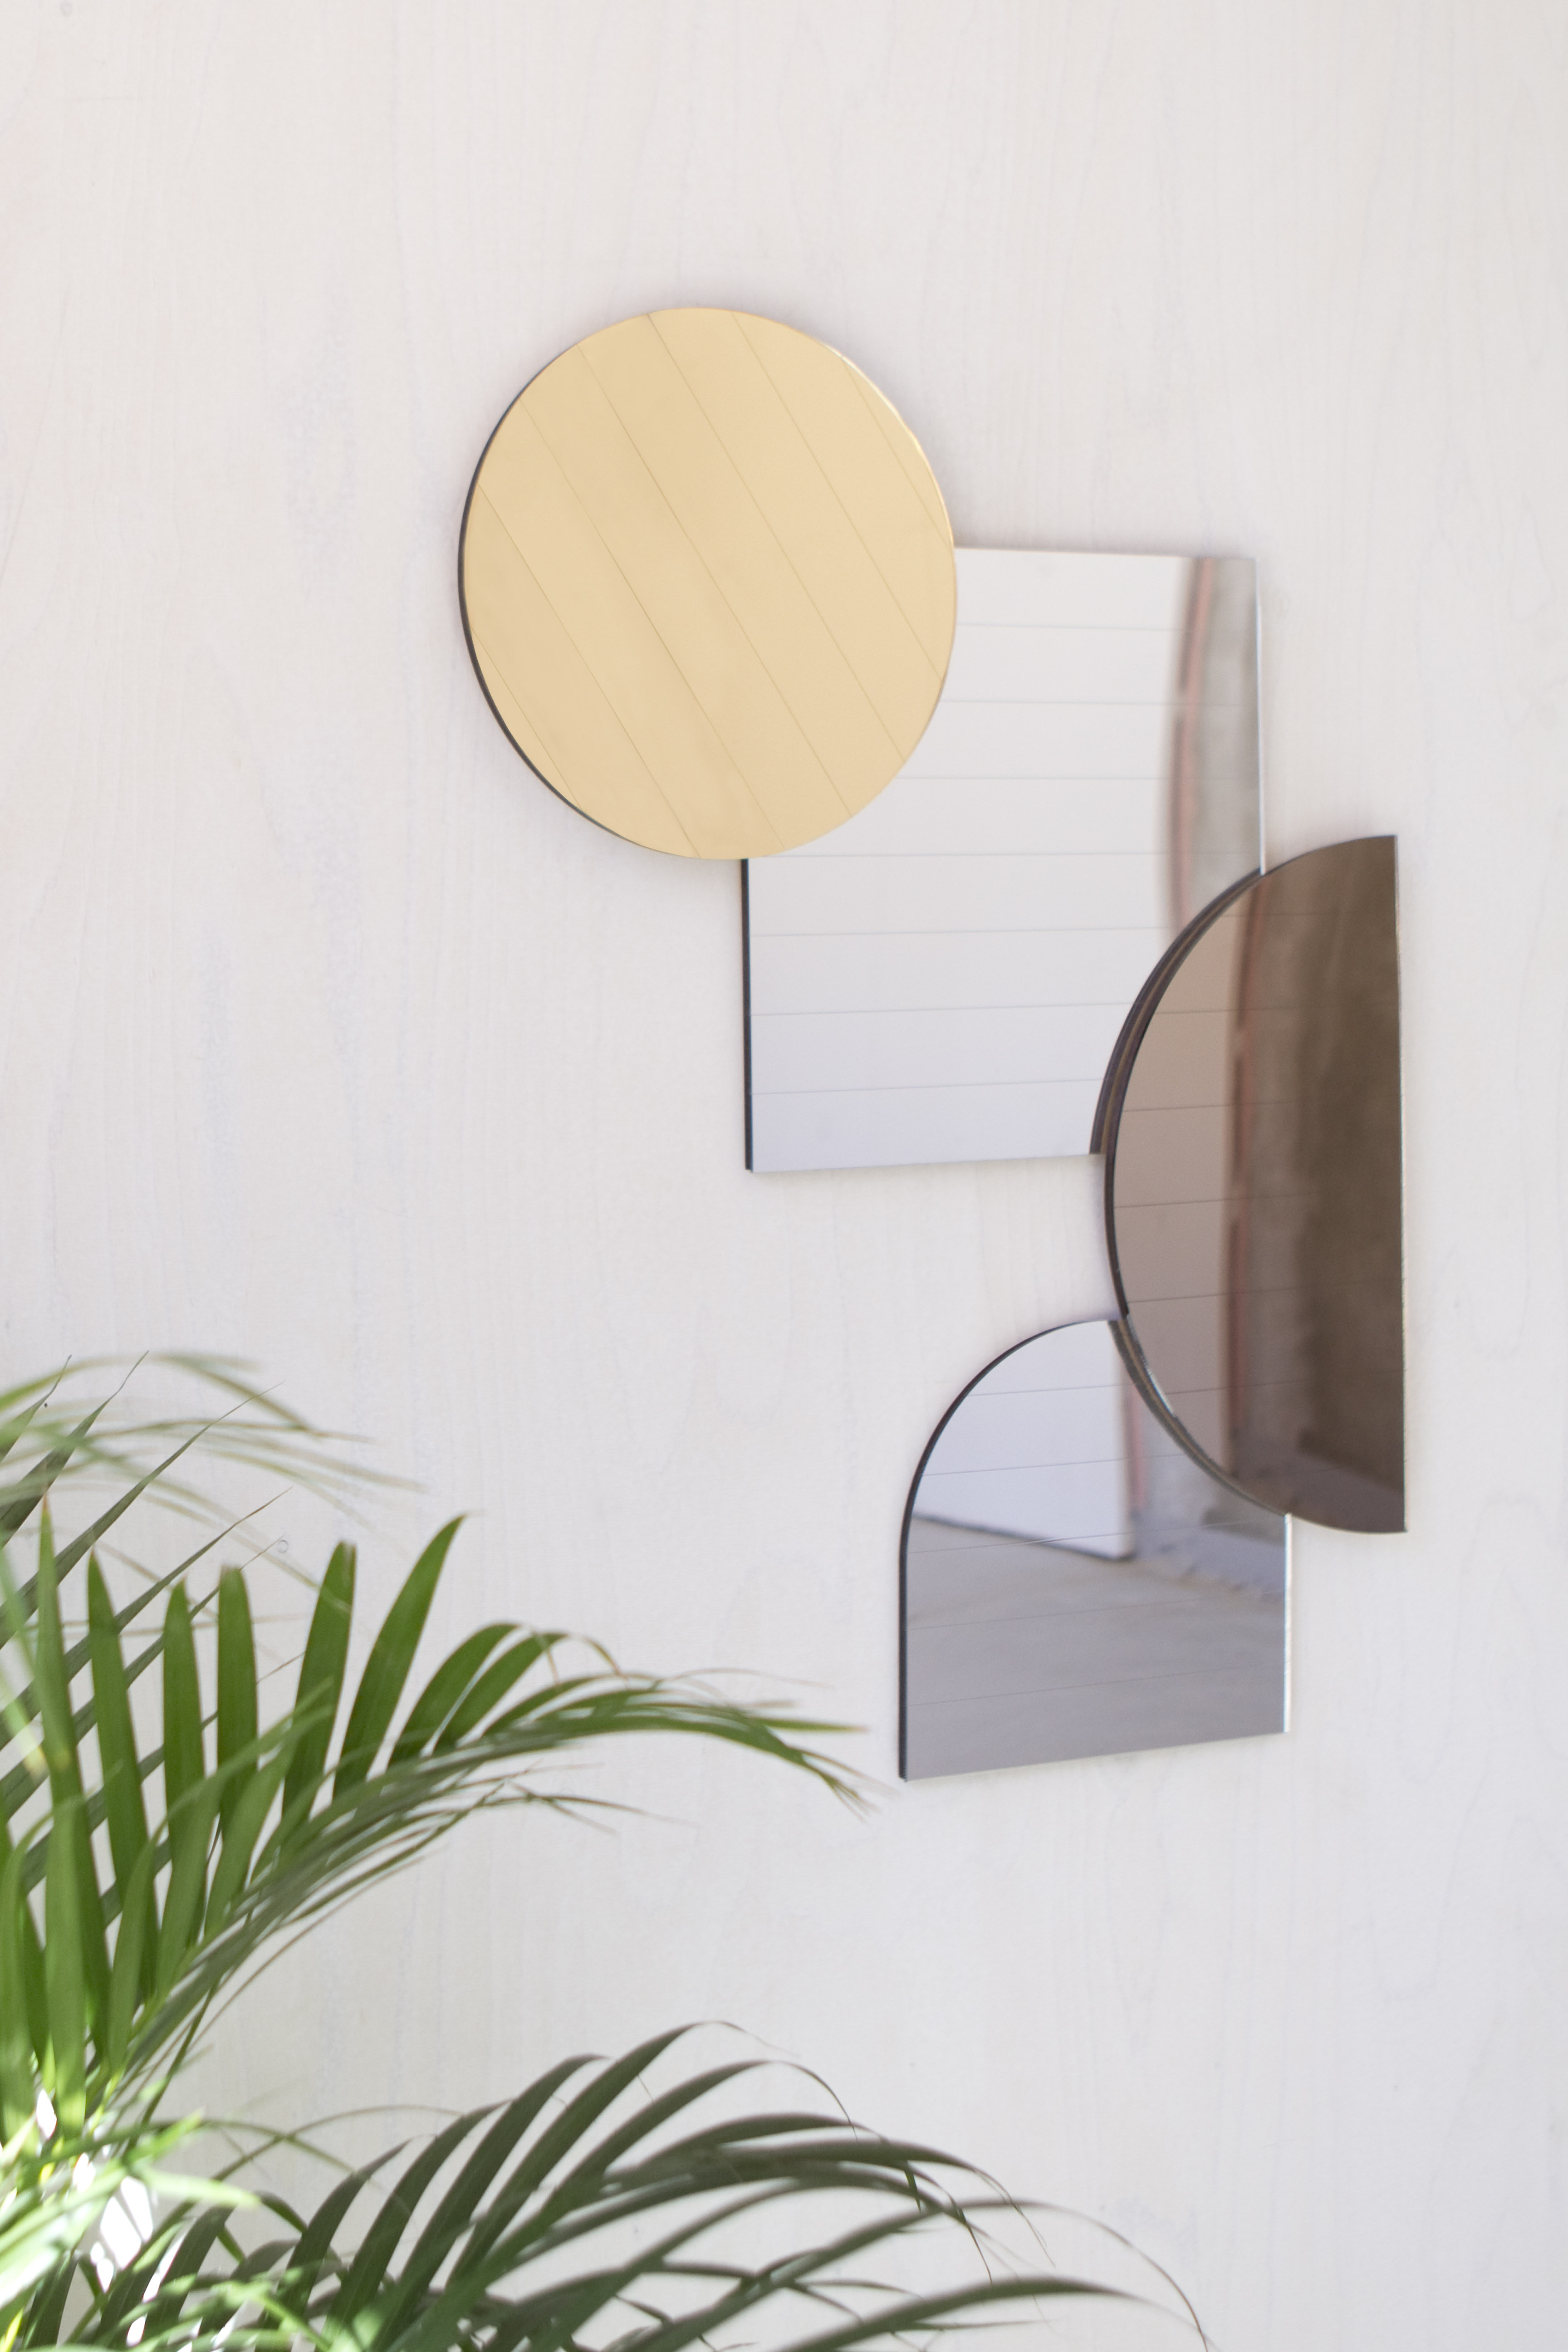 Layer Collection, individual mirrors that can be displayed in numerous positions with the possibility to overlap each other